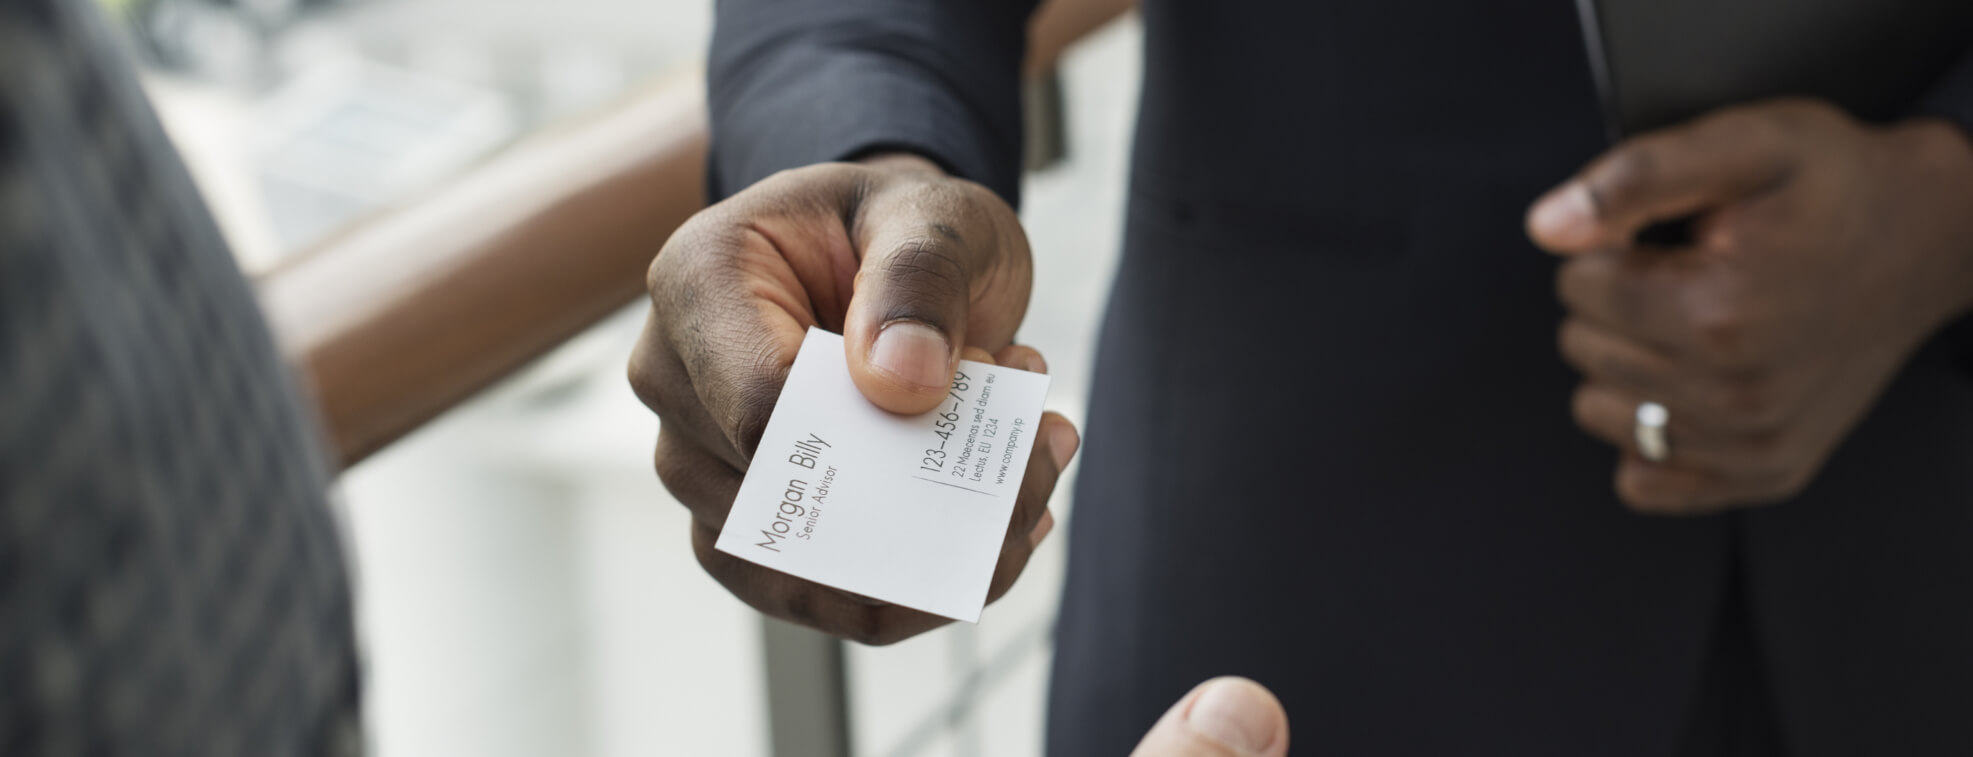 Man handing a high-quality business card to another person